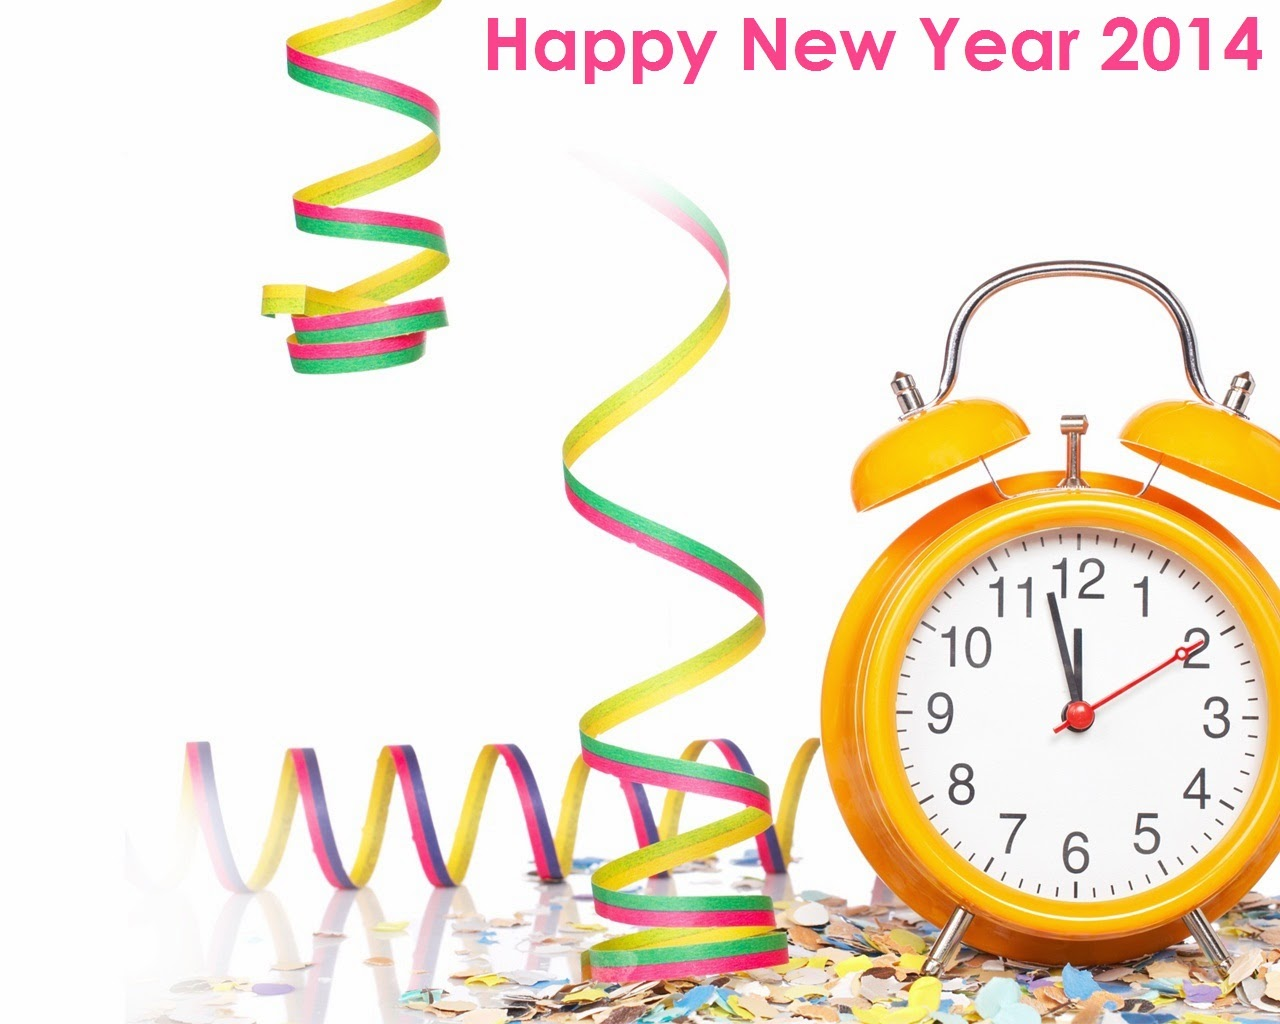 Happy new Year 2014 Marathi SMS Wishes  HD Wallpapers. 1280 x 1024.Happy New Year Senior Class Of  Slogans